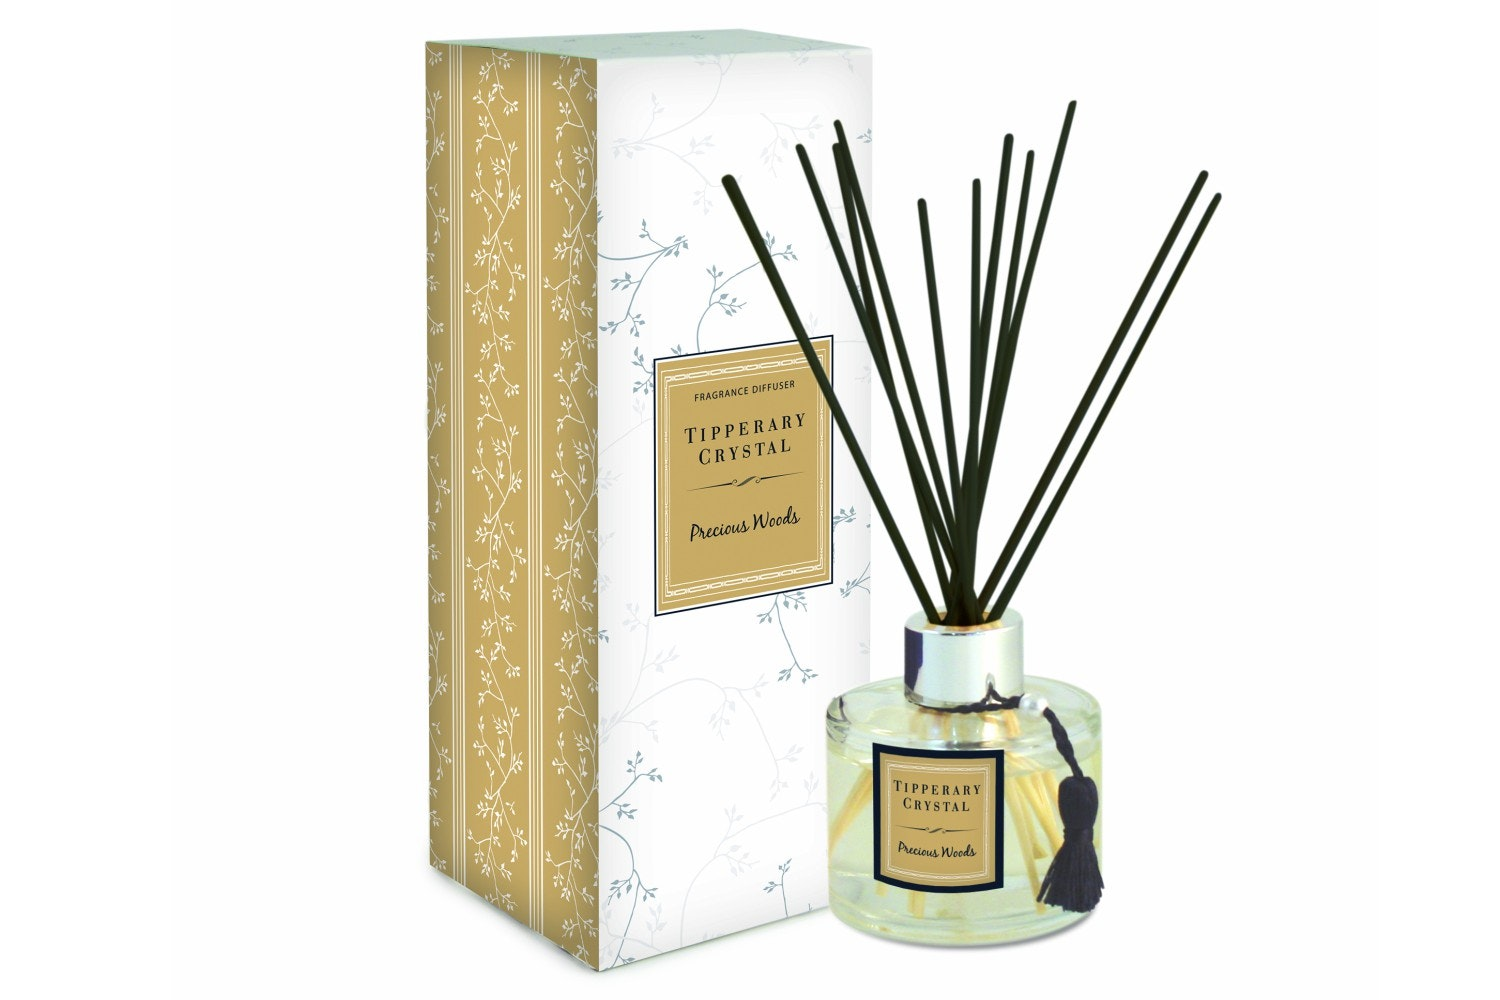 Tipperary Crystal Precious Woods Fragranced Diffuser